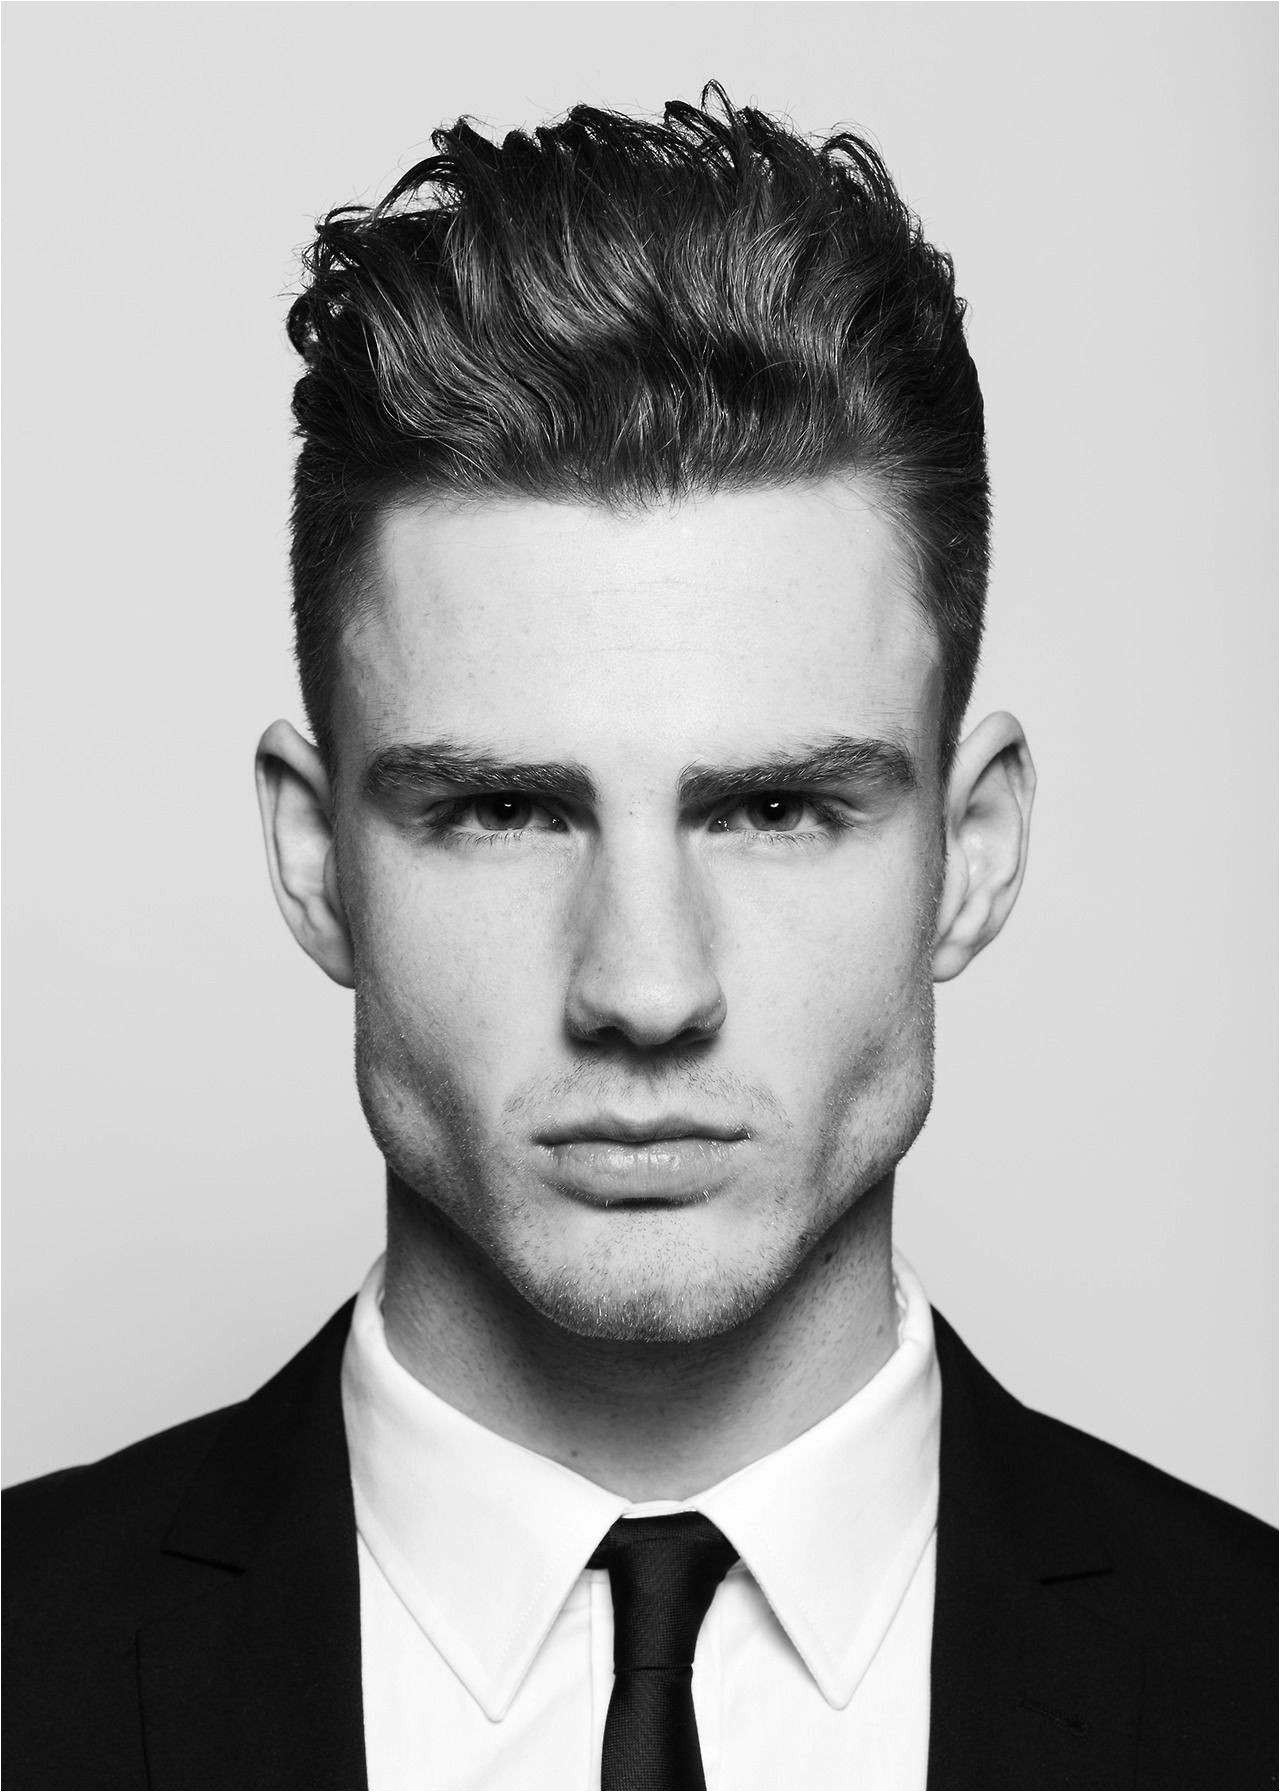 Mens Hair Stylists Lovely Hairstyles to Get at A Salon Fresh X Cuts Hair Salon